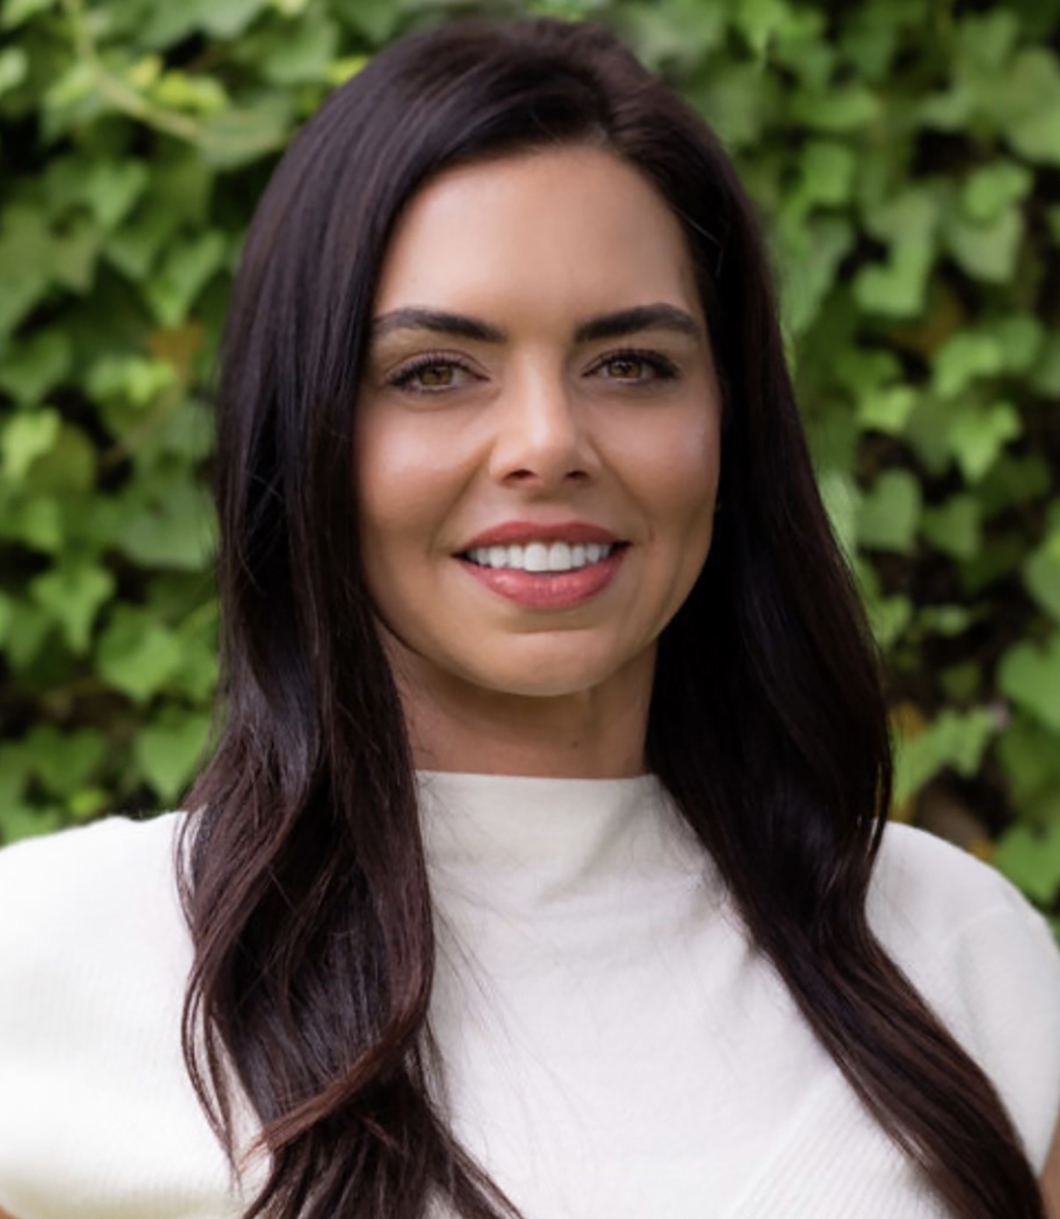 Andrea Peeler - Agent at The Reyna Group